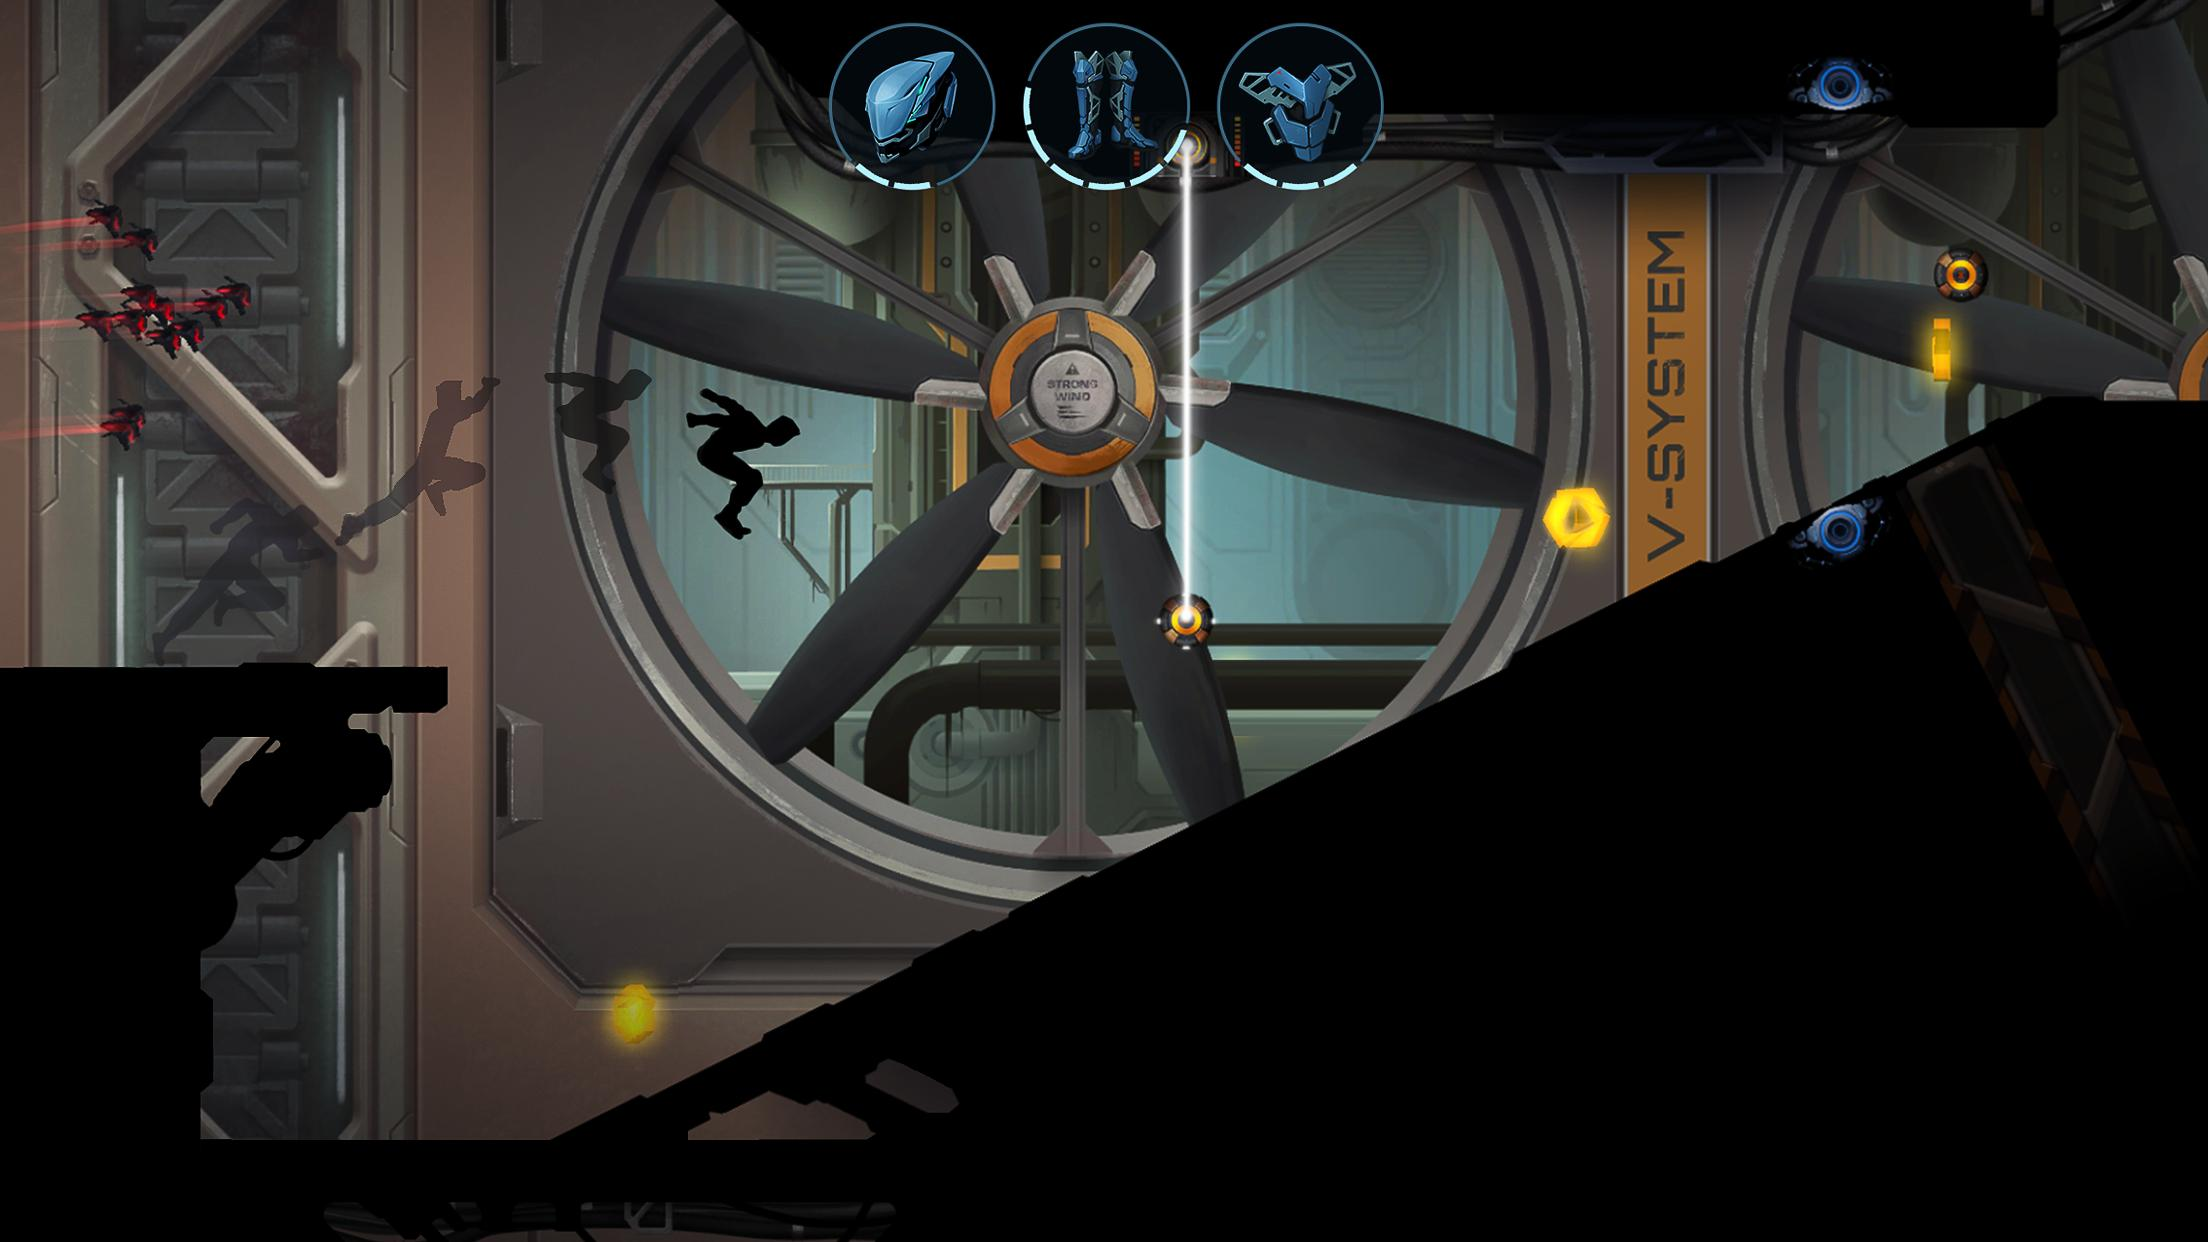 Vector 2 for Android - APK Download